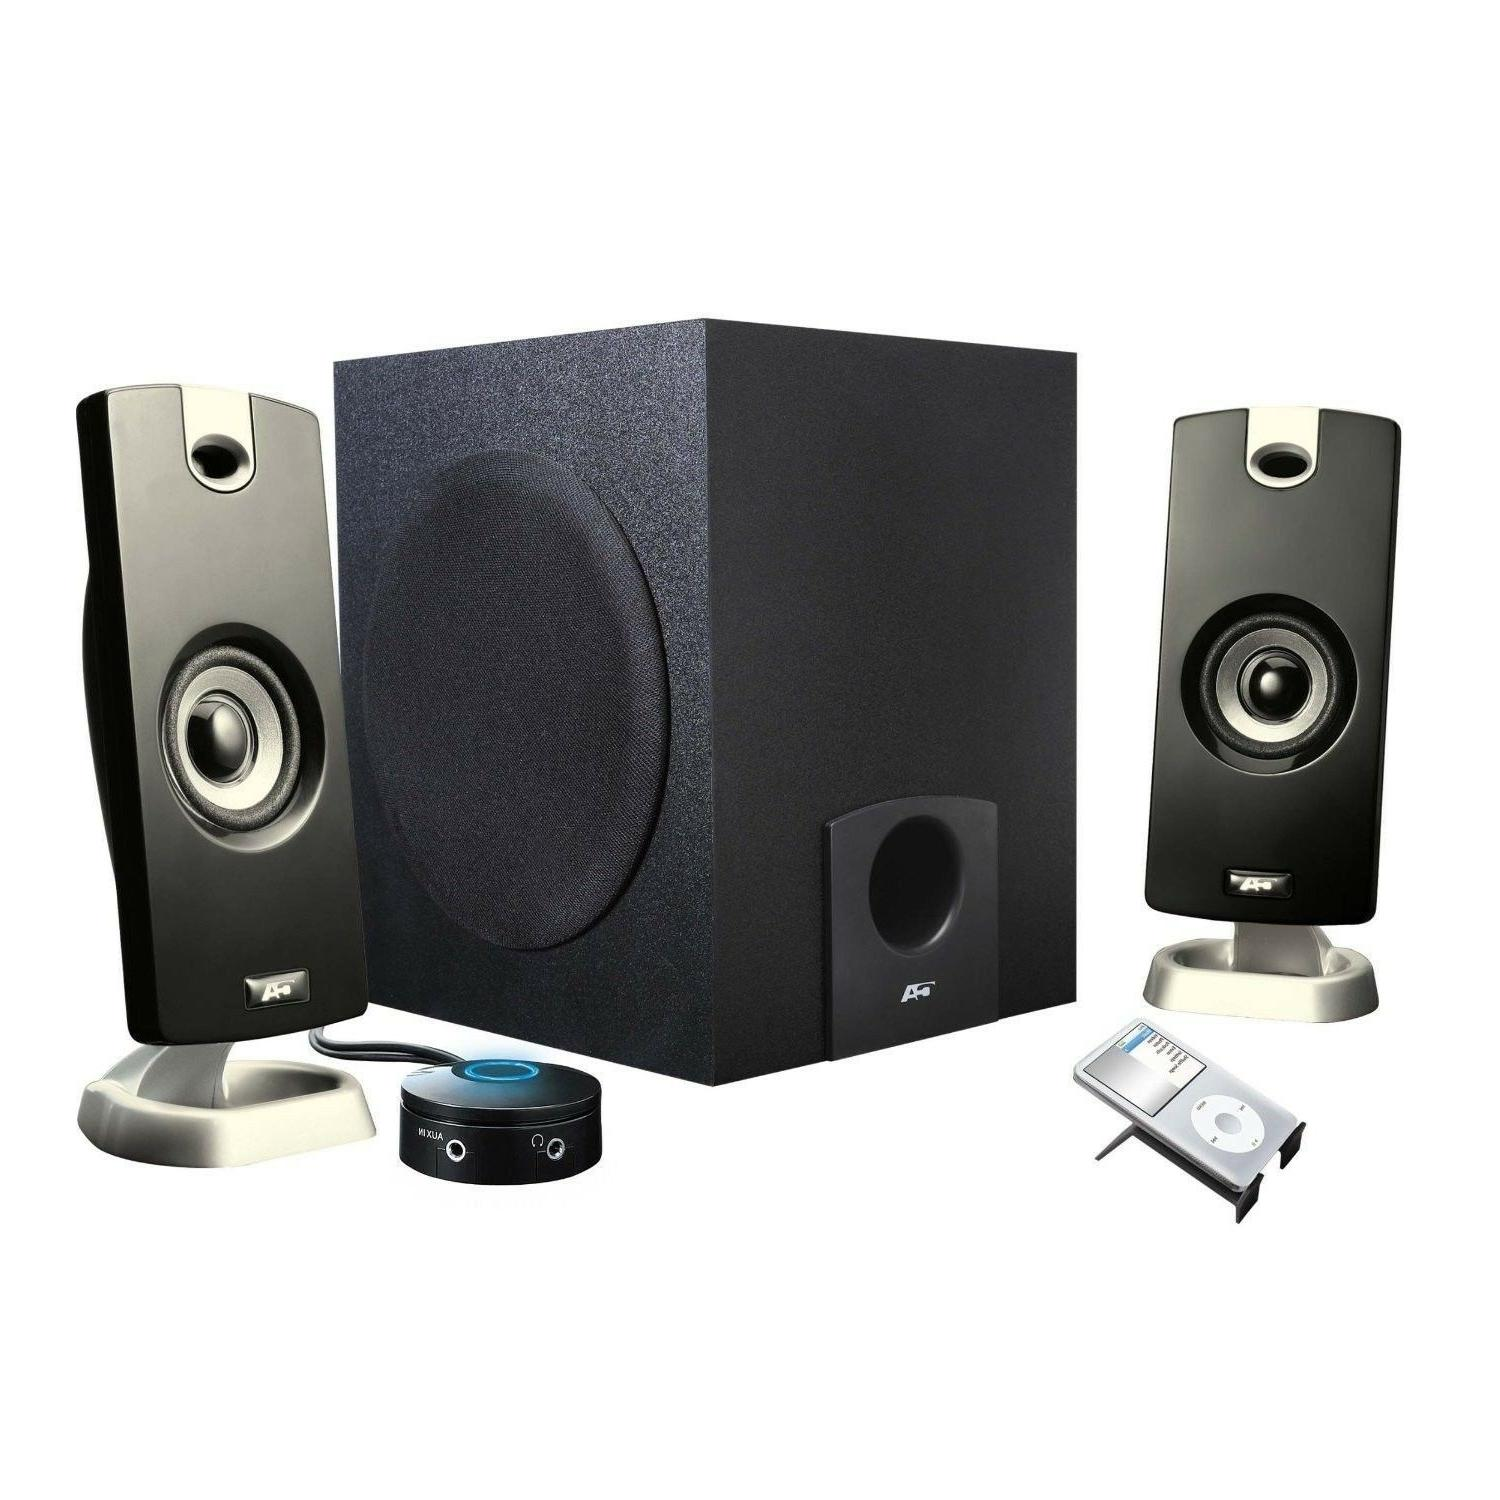 PC Laptop Computer Surround Sound Speakers w/Subwoofer for video gaming